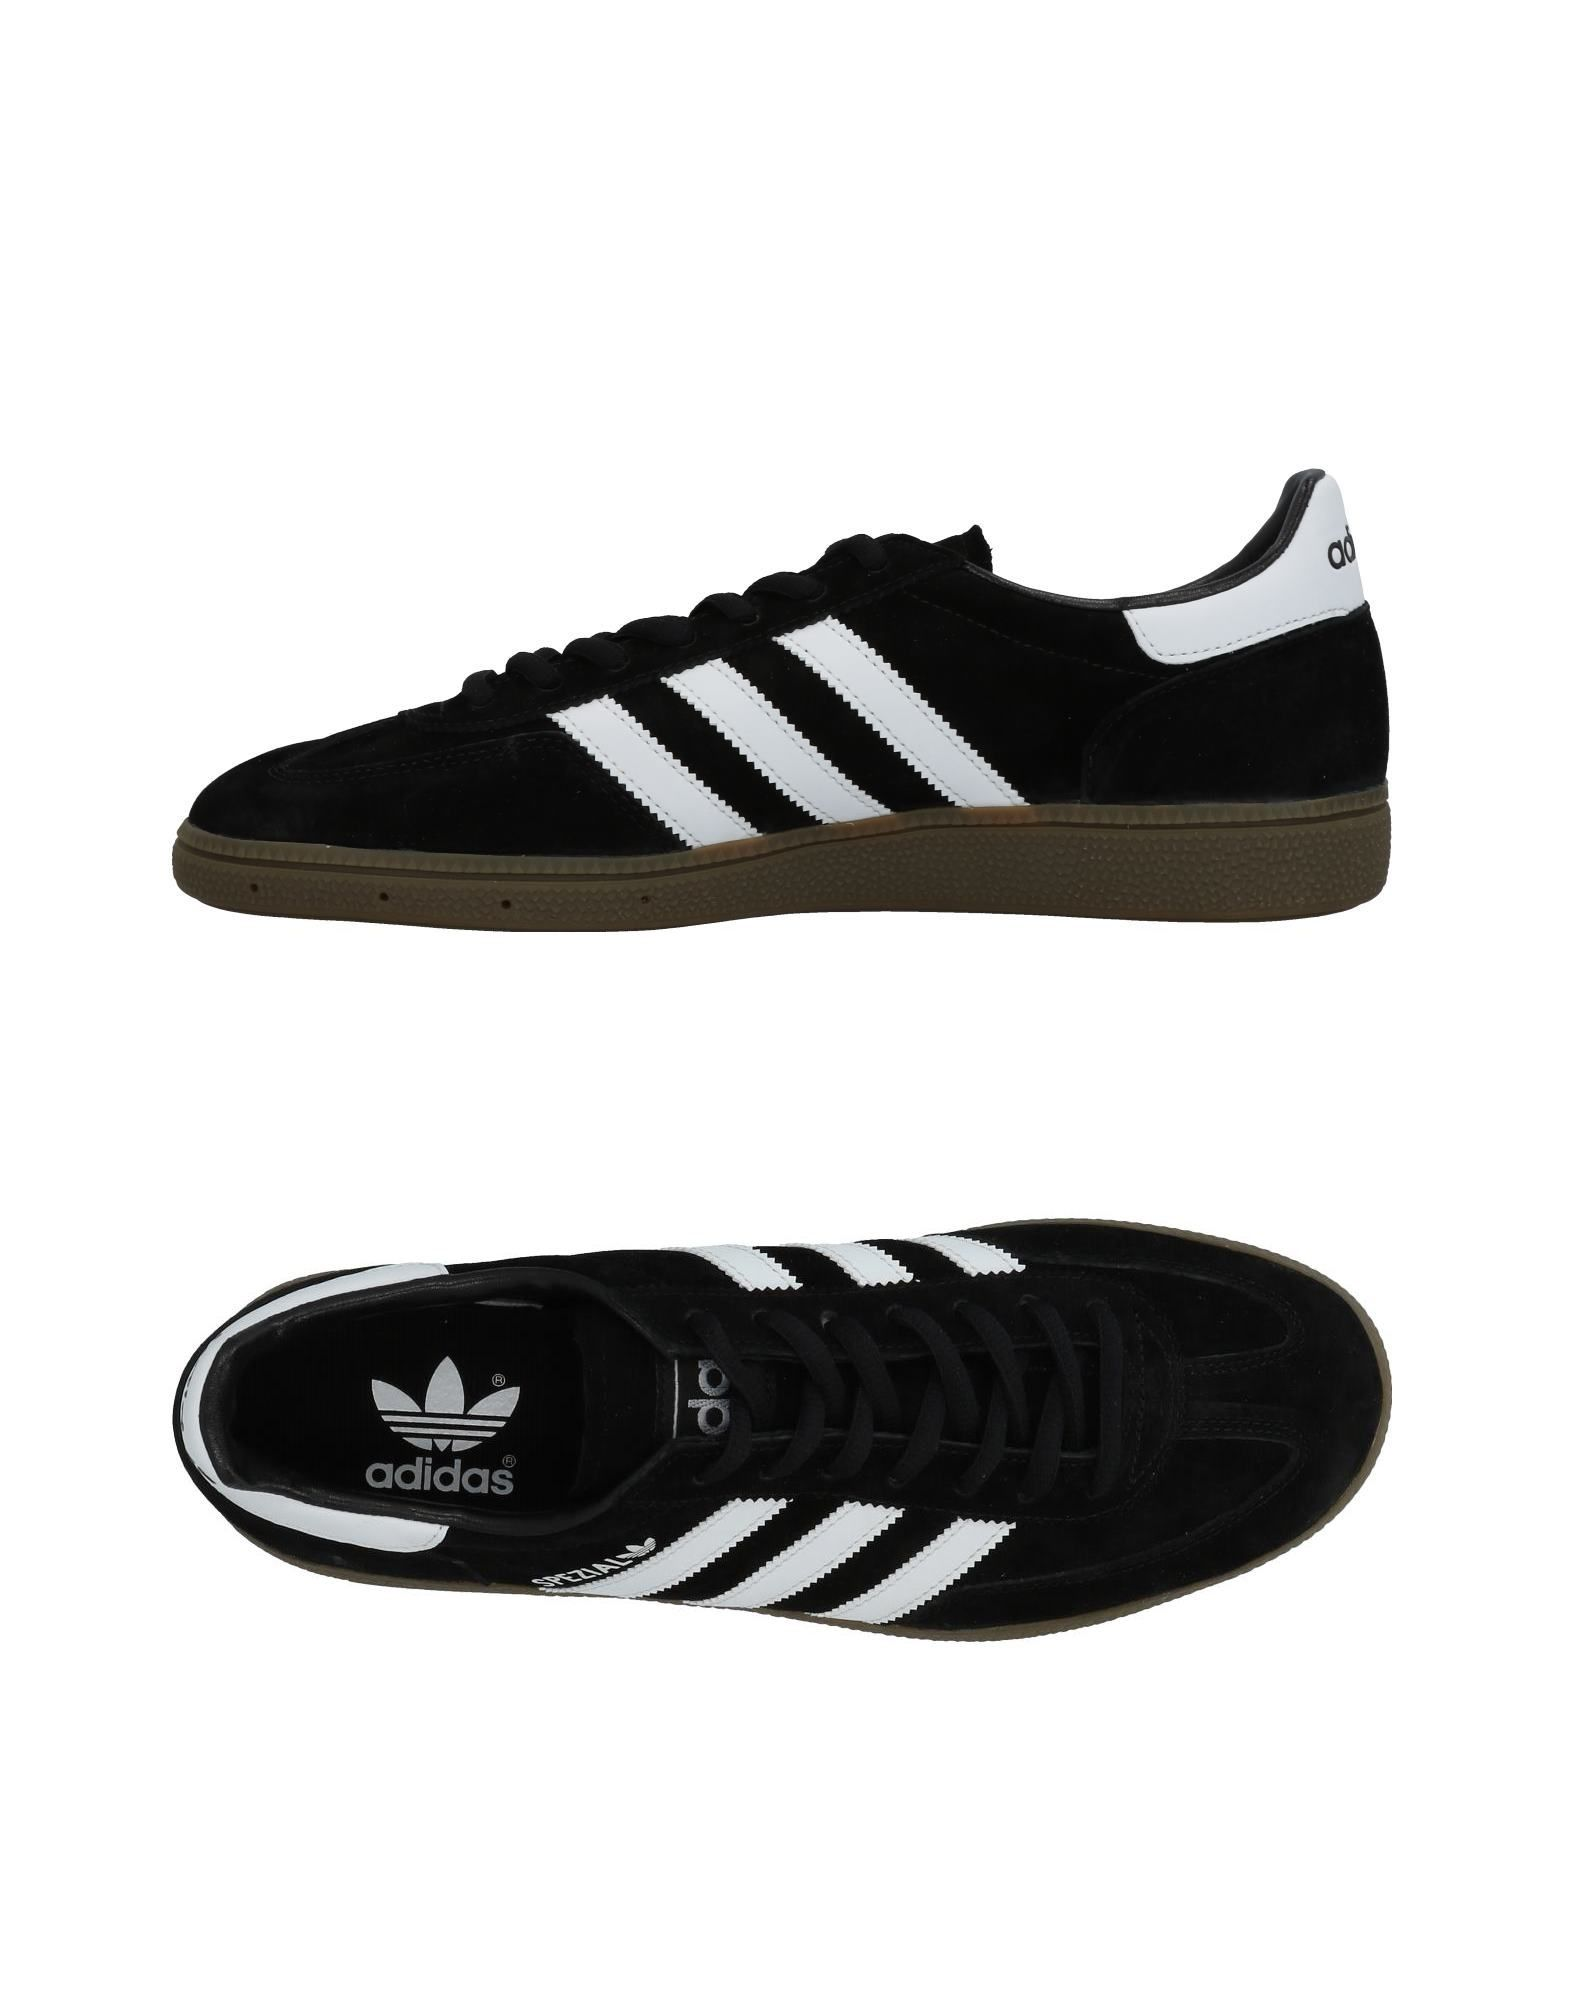 Sneakers Adidas Originals Uomo - 11461222IJ